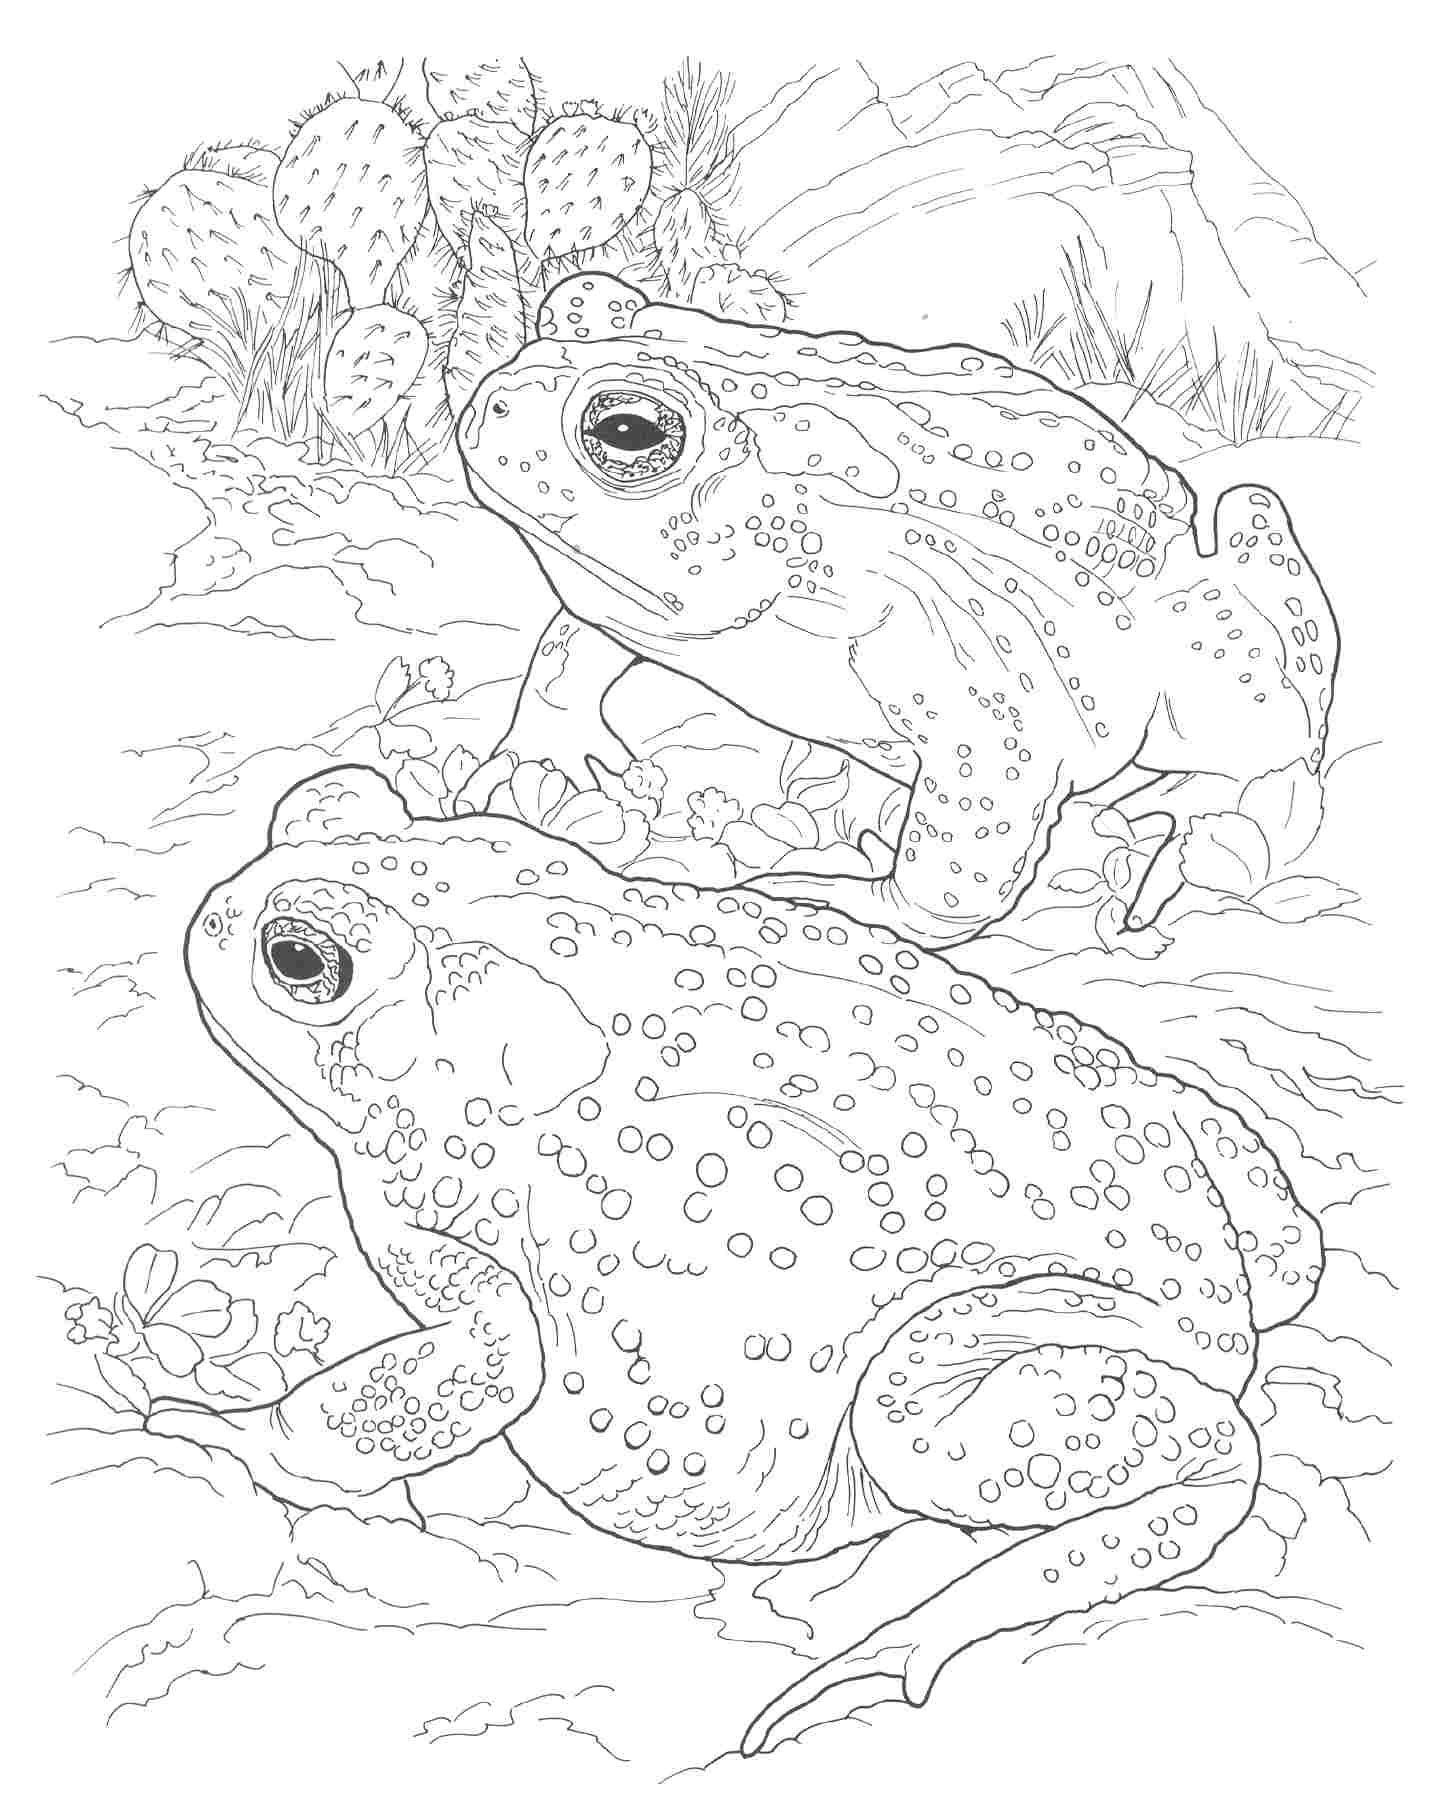 Rocky and bullwinkle printable coloring pages Google Search